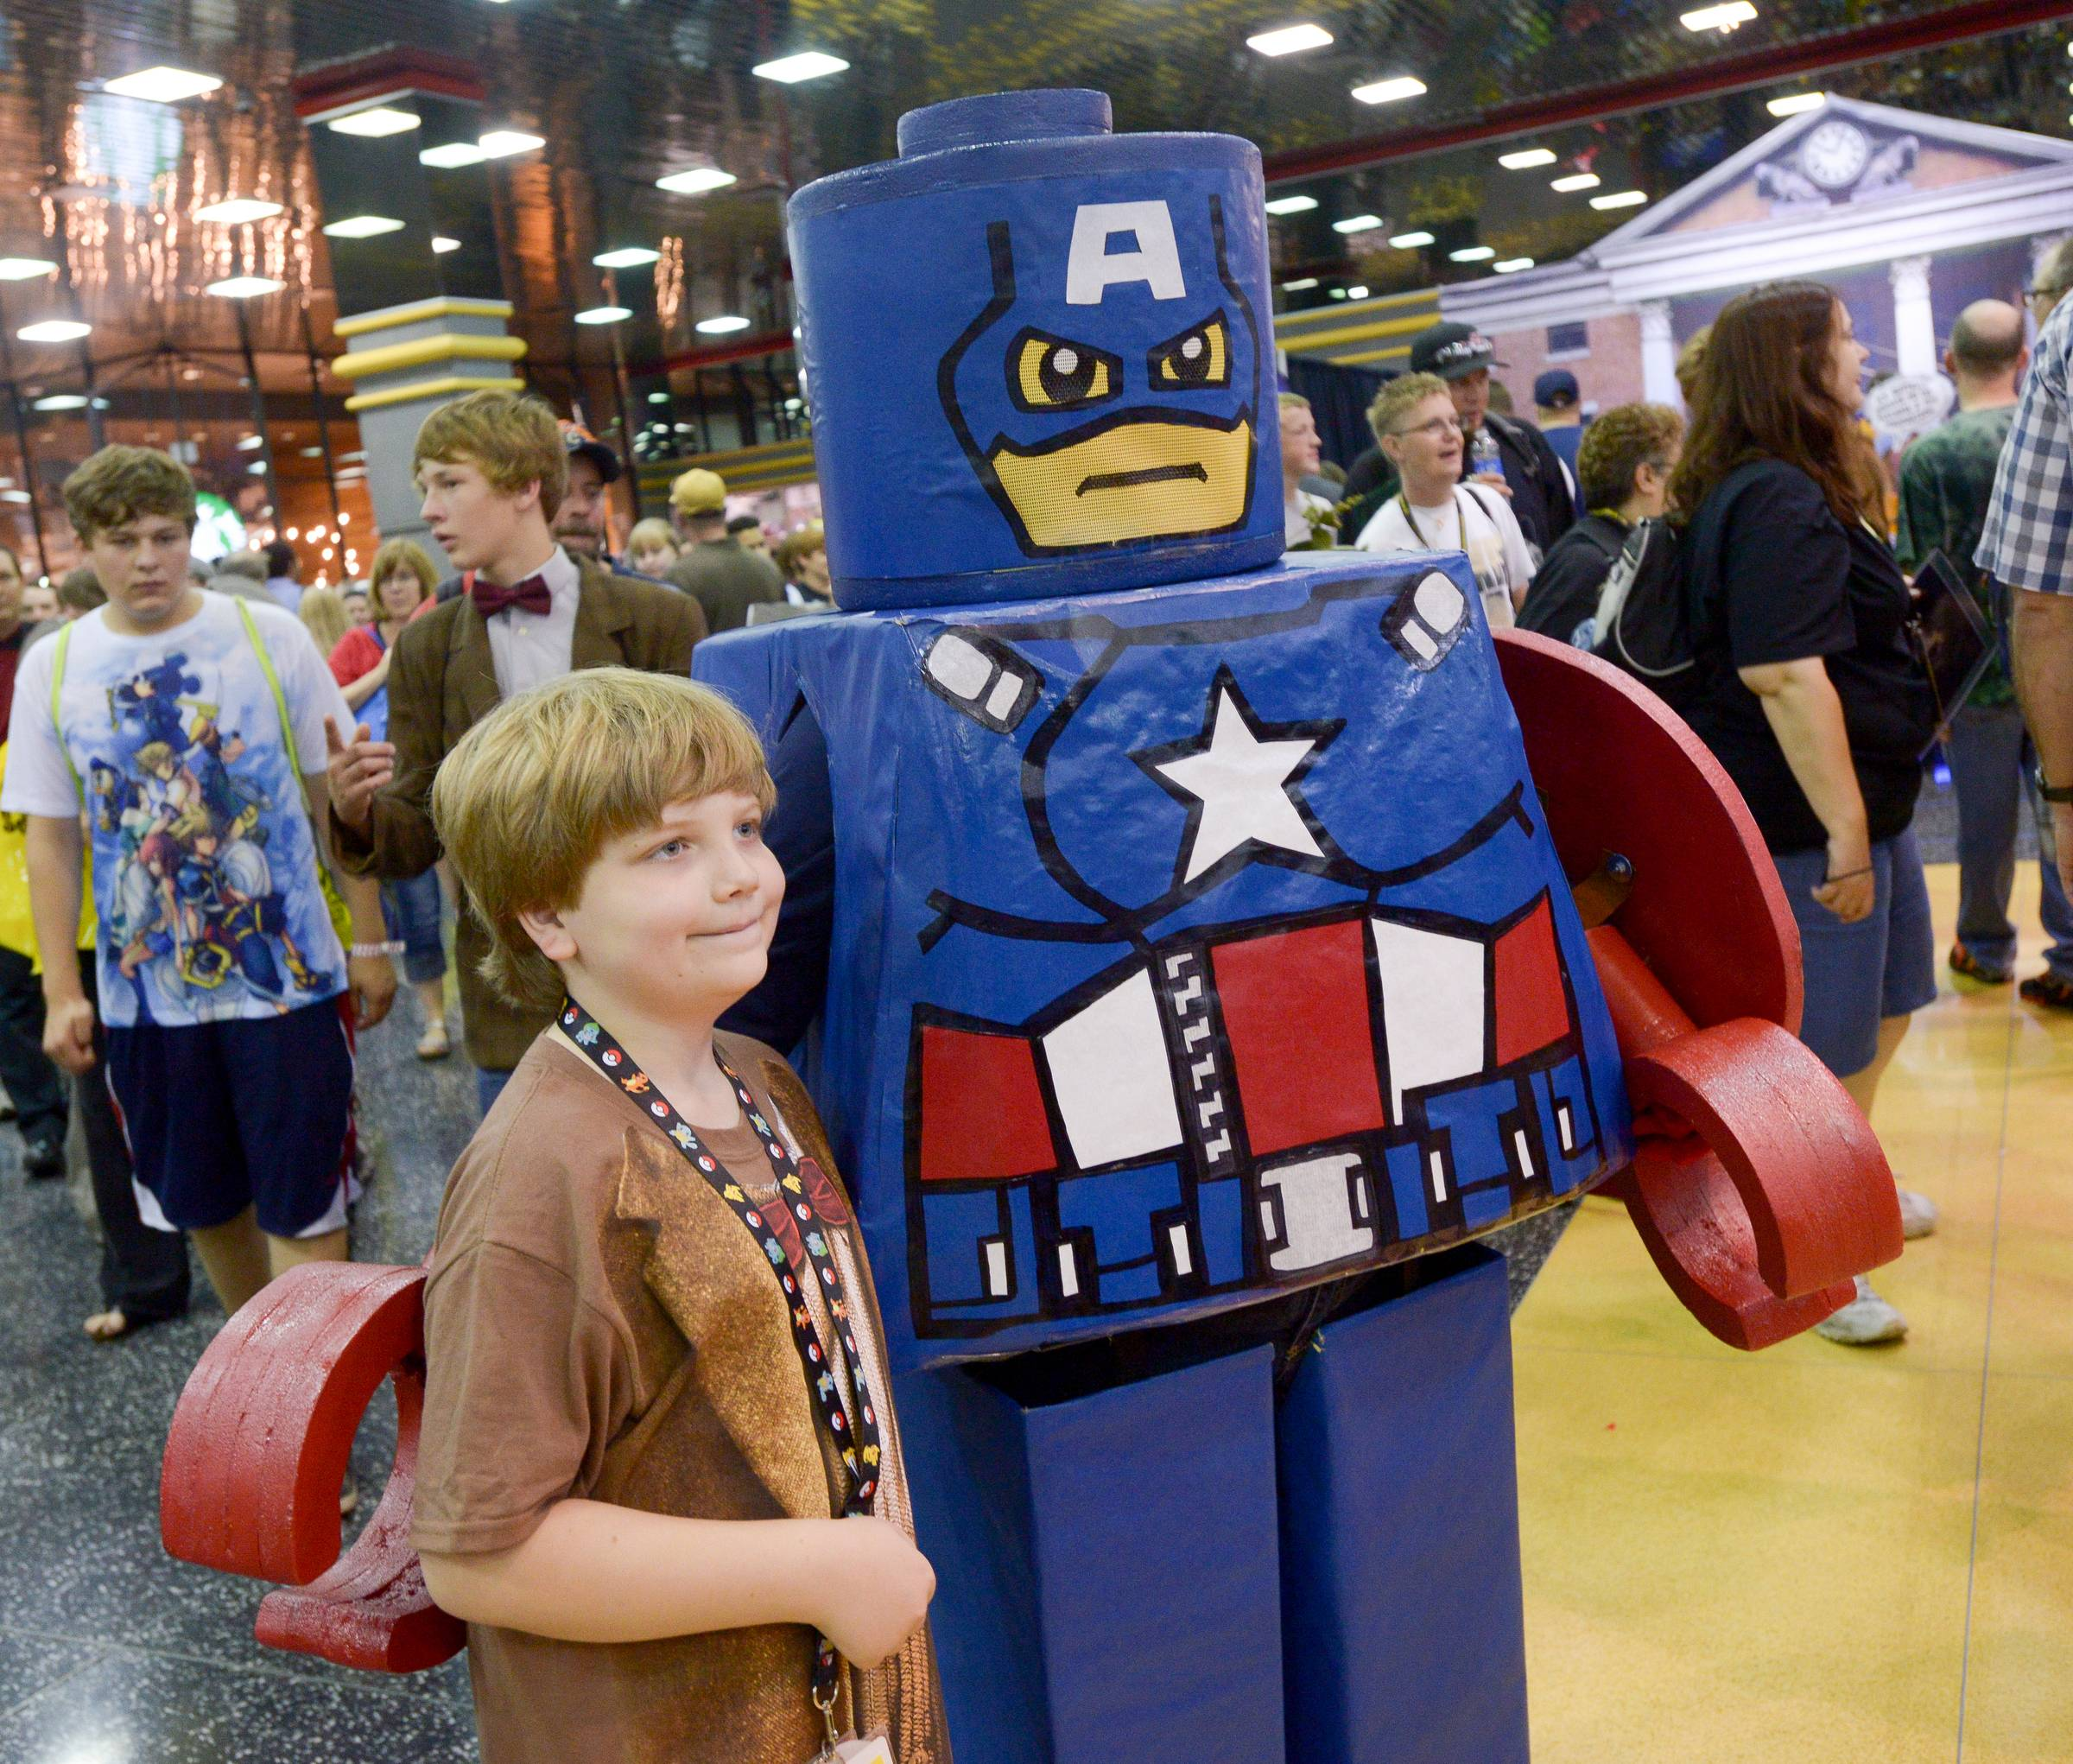 Aiden Wilbanks of Huntsville Alabama pose for a photo with a Lego Captain American while visiting the Comic Con convention at the Donald E. Stephens Convention Center in Rosemont.